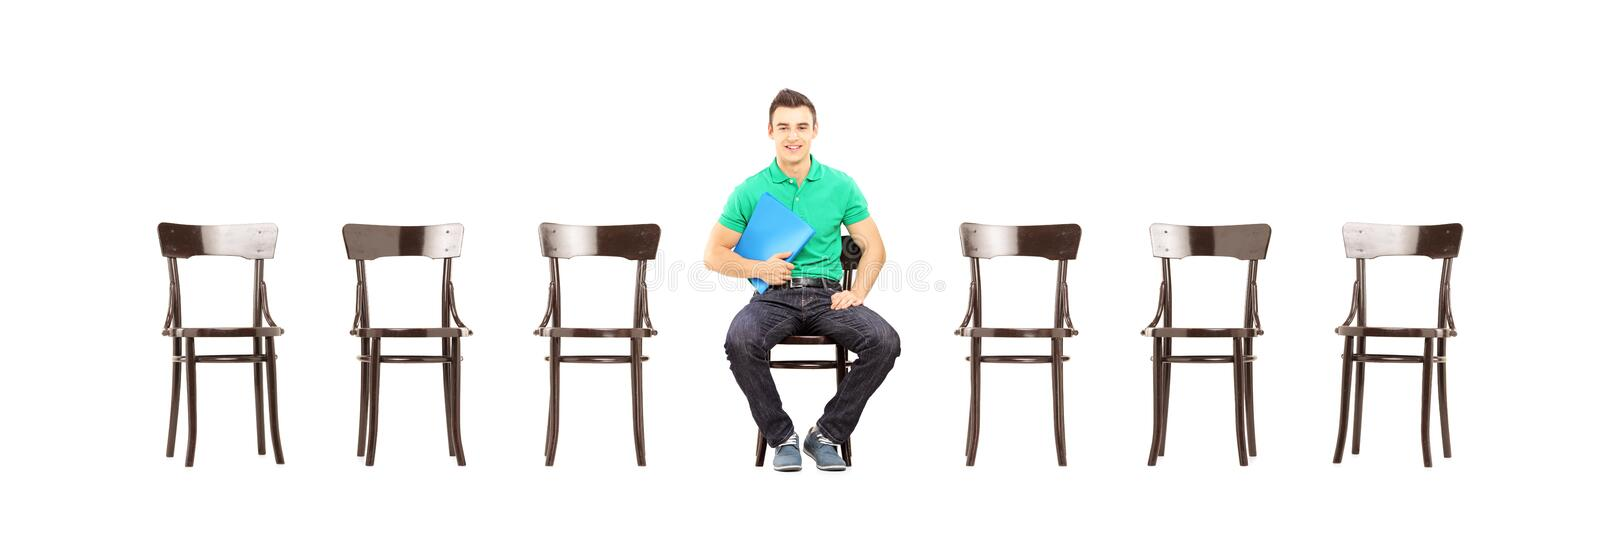 Young male sitting on a chair and waiting for job interview royalty free stock image